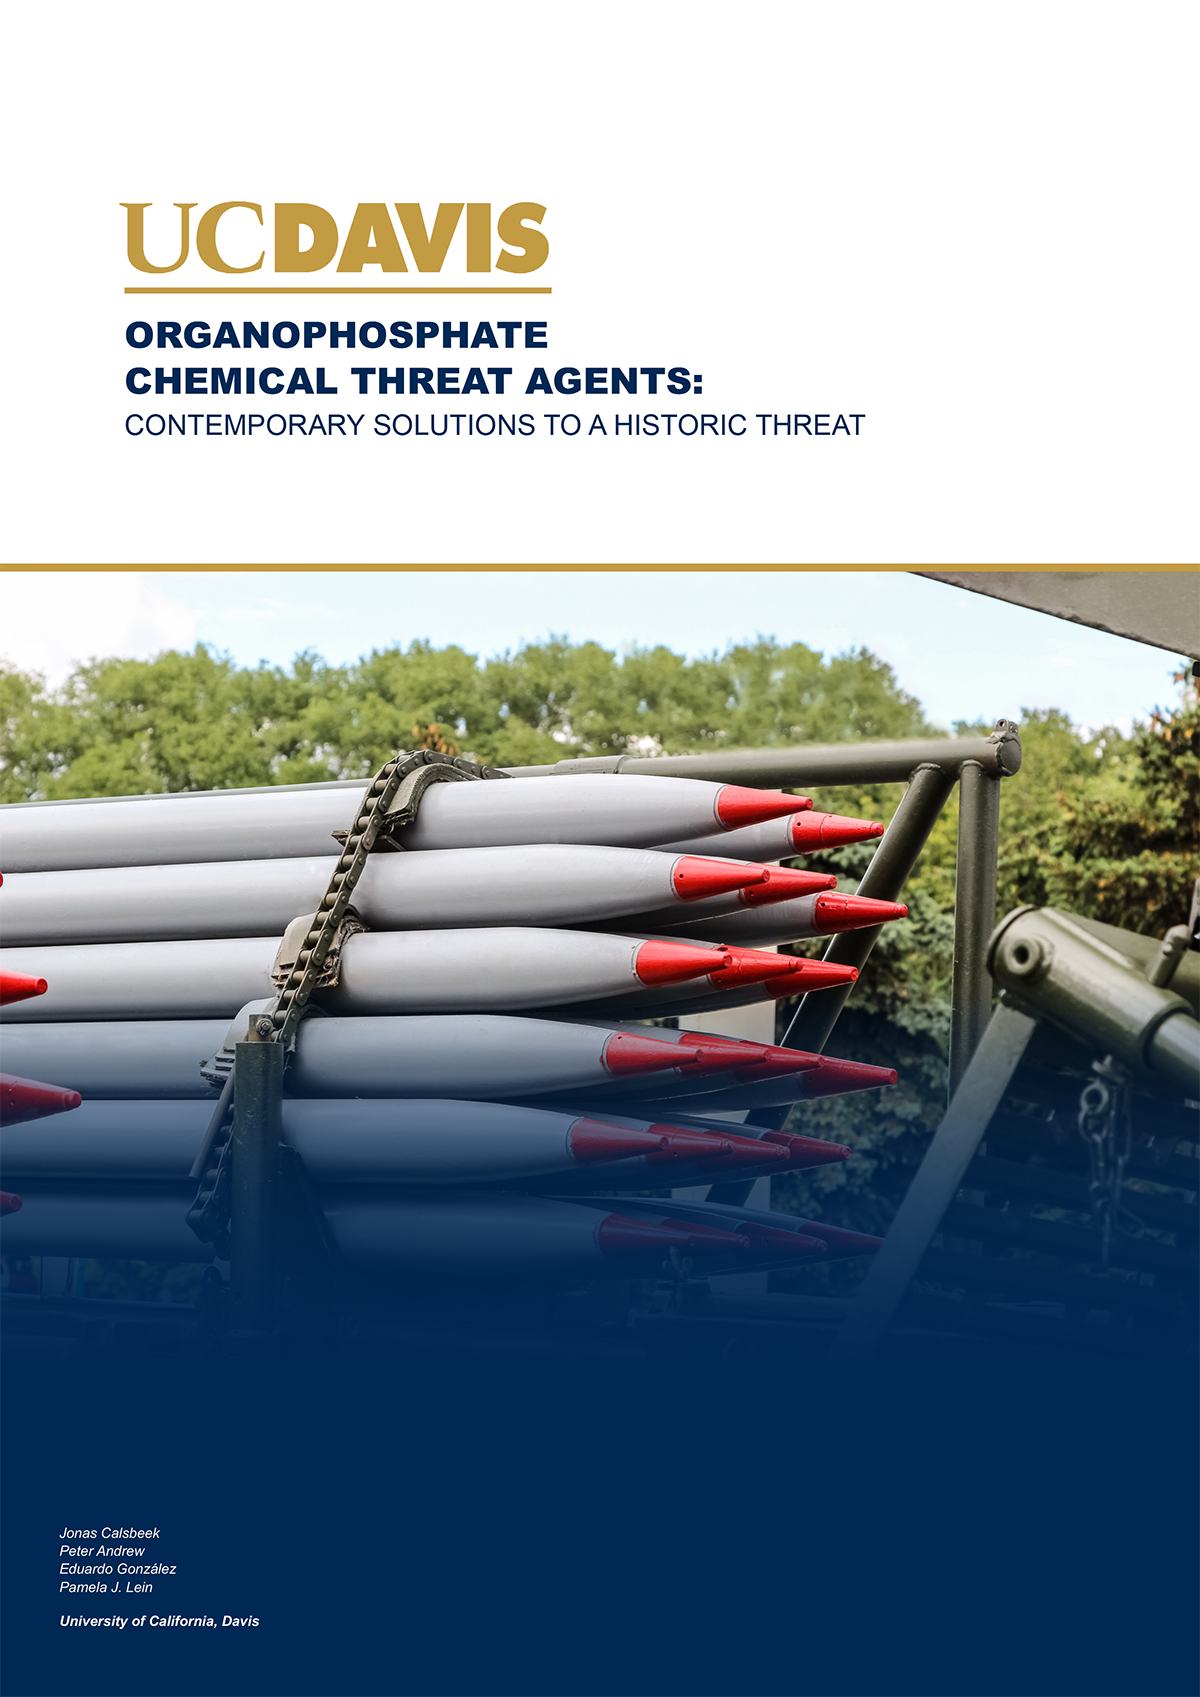 Organophosphate Chemical Threat Agents, neurotoxicology